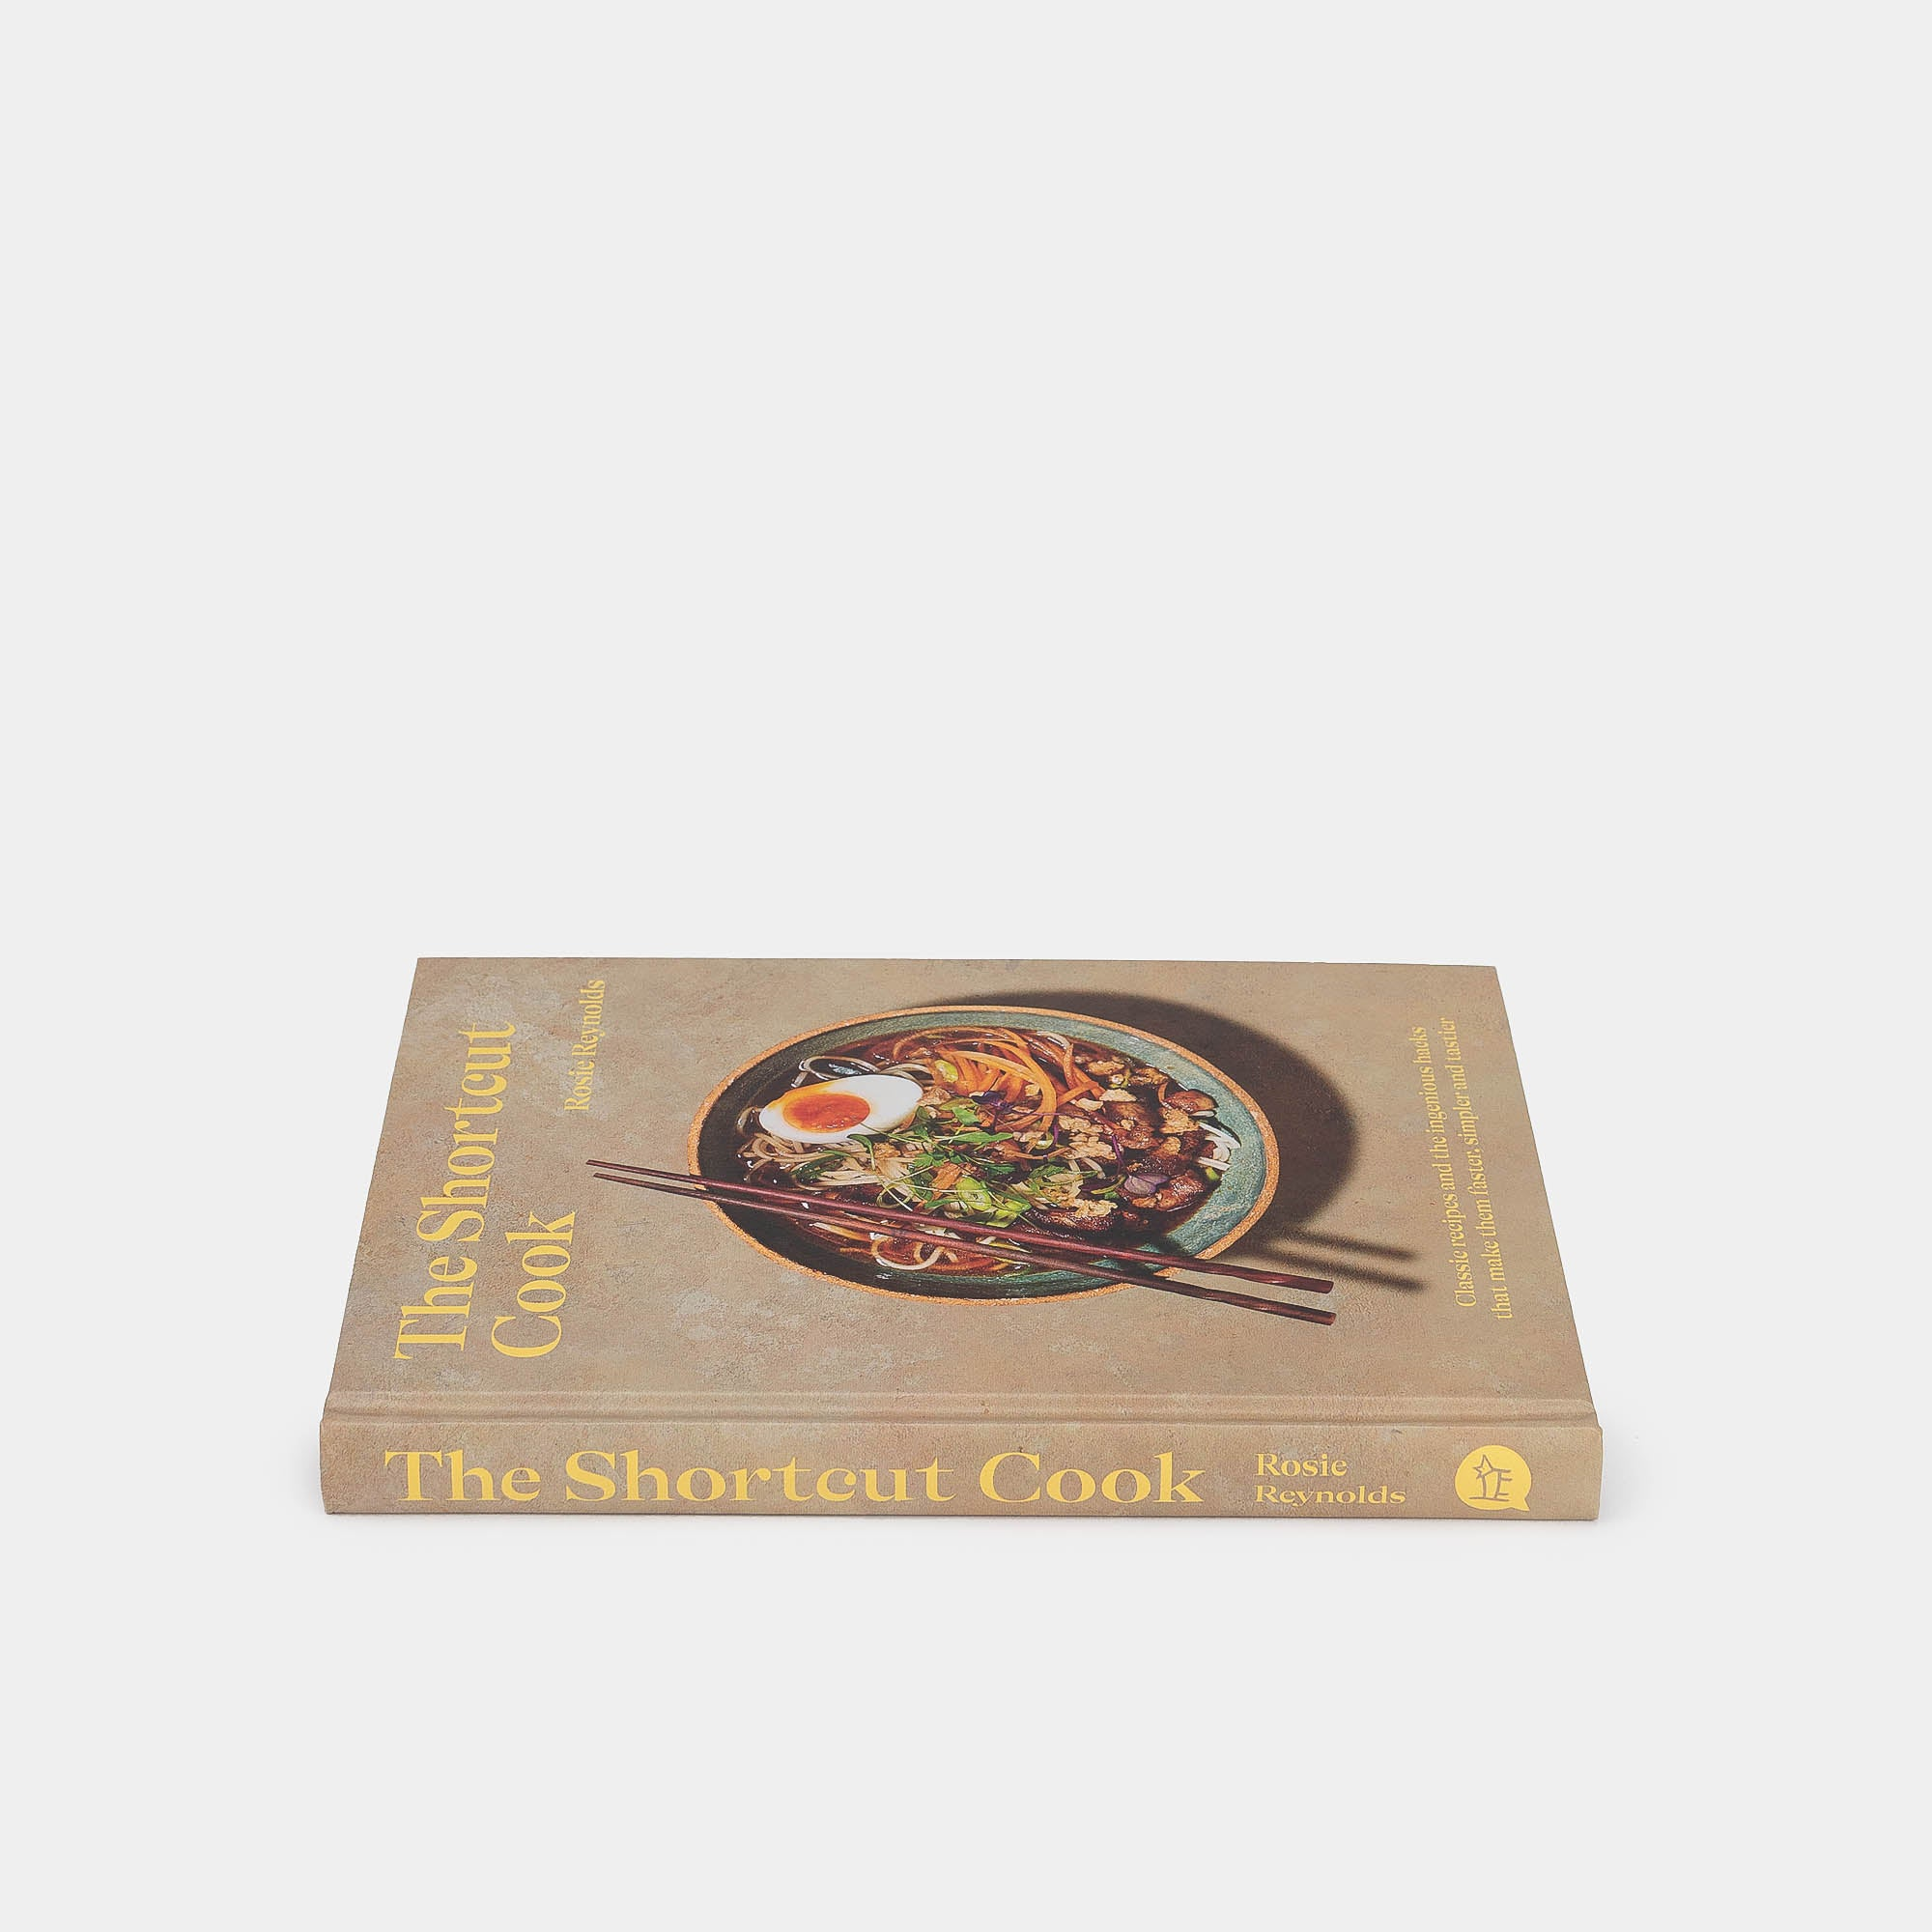 The Shortcut Cook